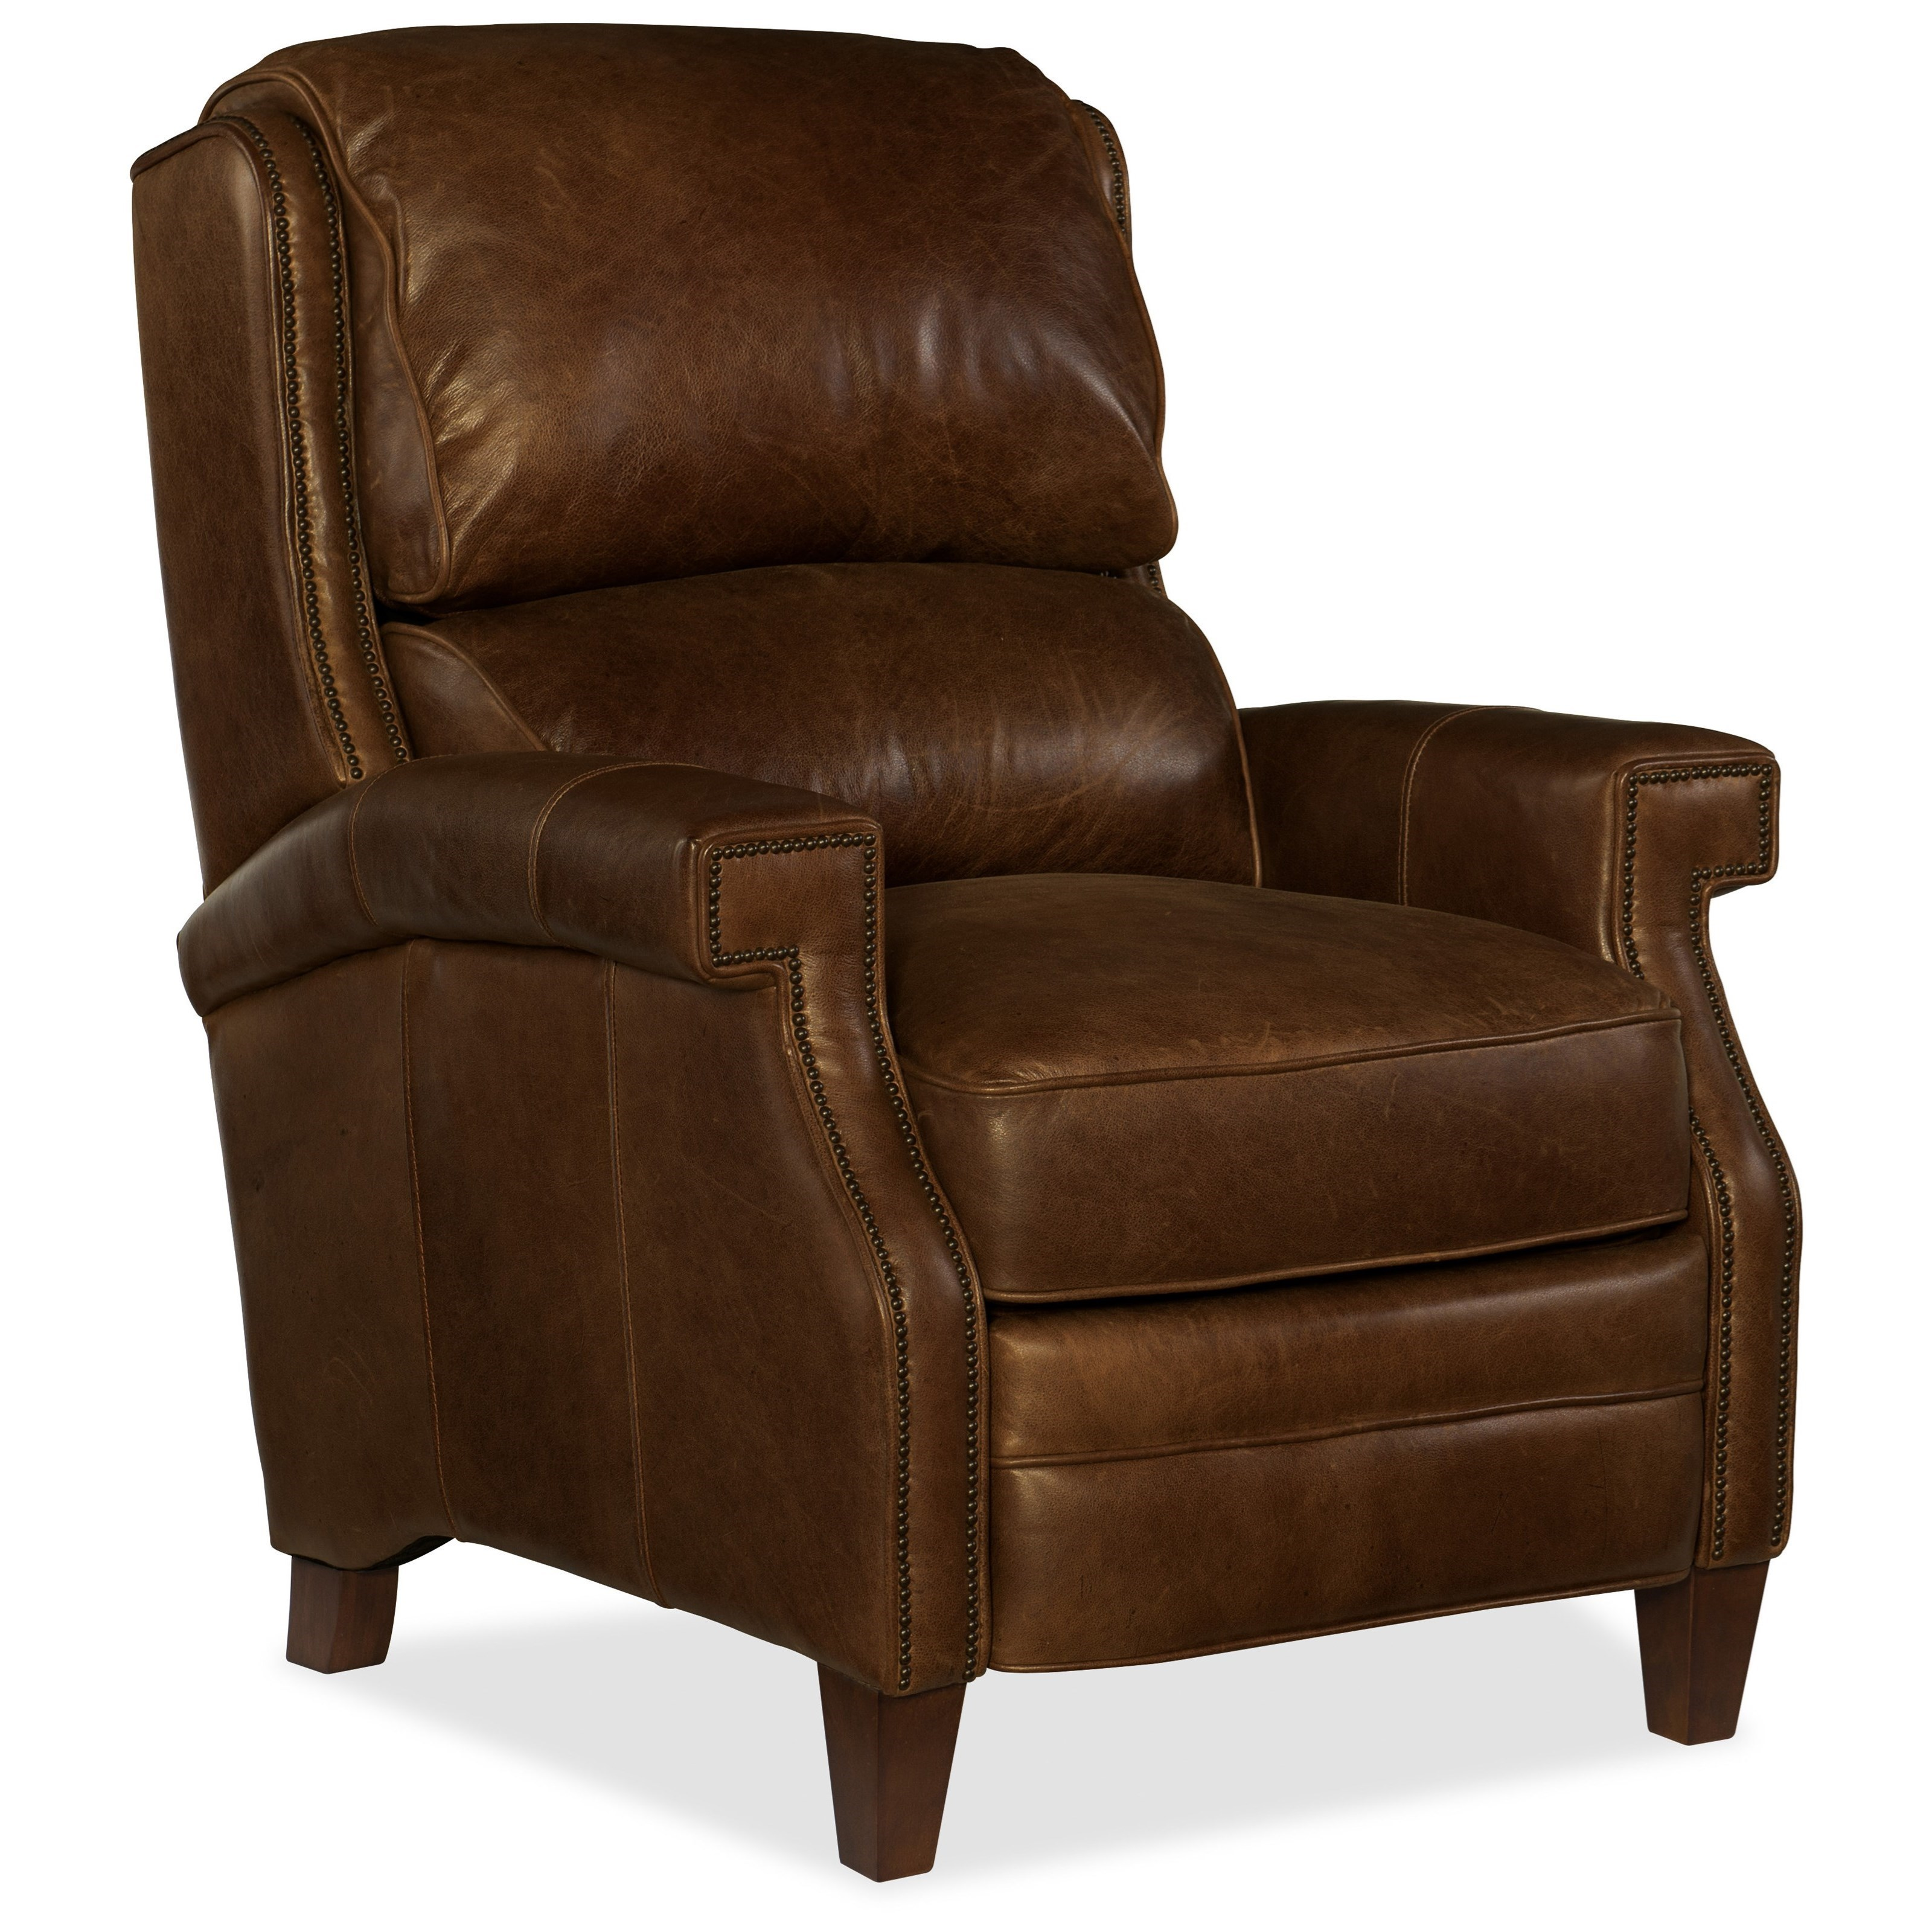 Hooker Furniture Reclining Chairs Albert Transitional Leather Recliner